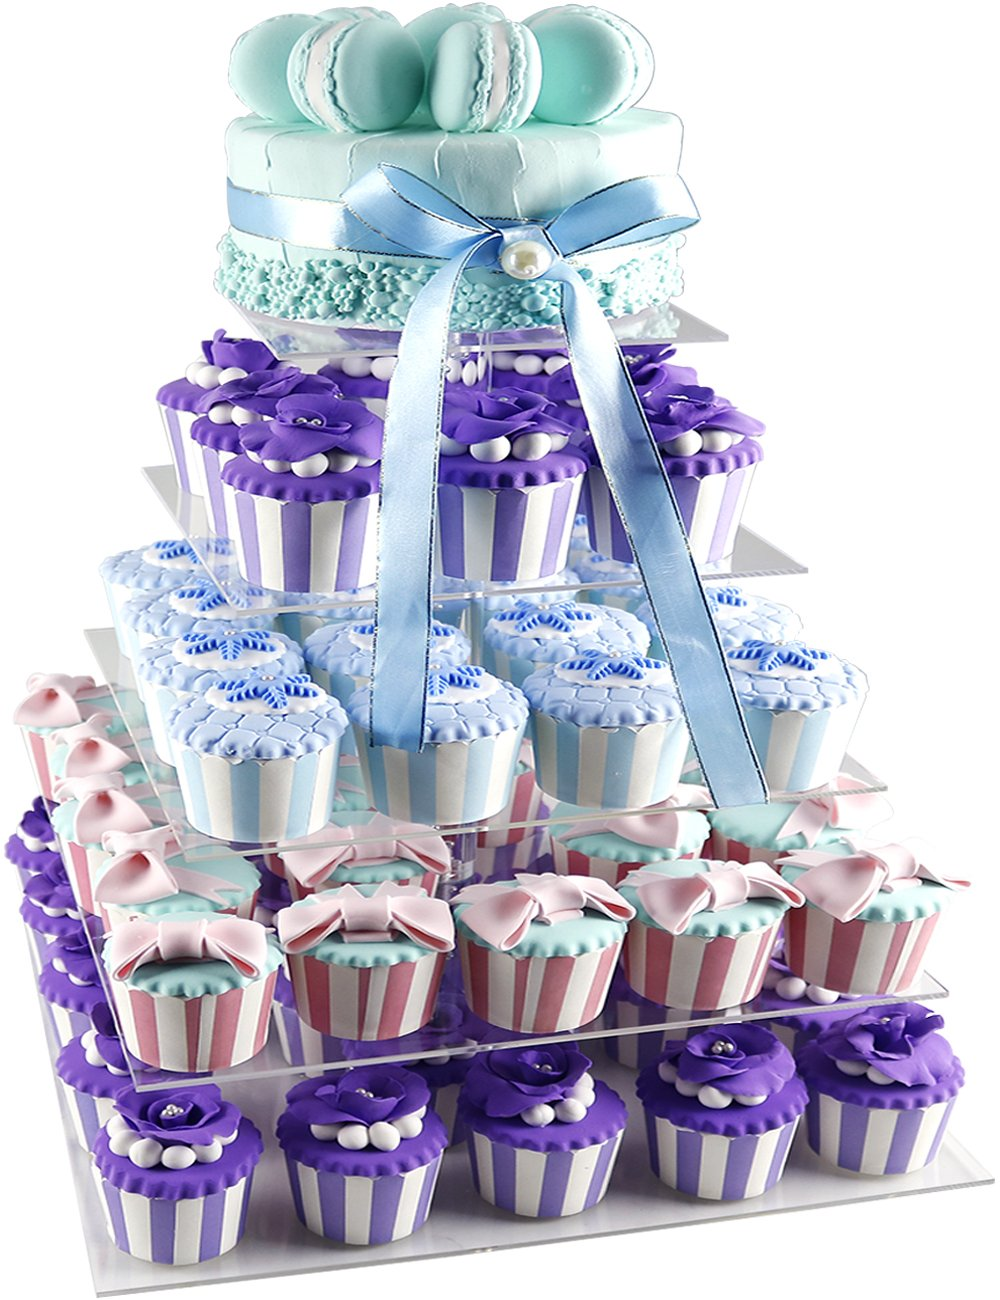 Suitable for All Special Occasions Baking Cups DYCacrlic Cupcake Holder Clear 3 Tier Square Acrylic Cupcake Holder Stand for Wedding Birthday Party Easy to Assemble Disassemble Wash /& Store